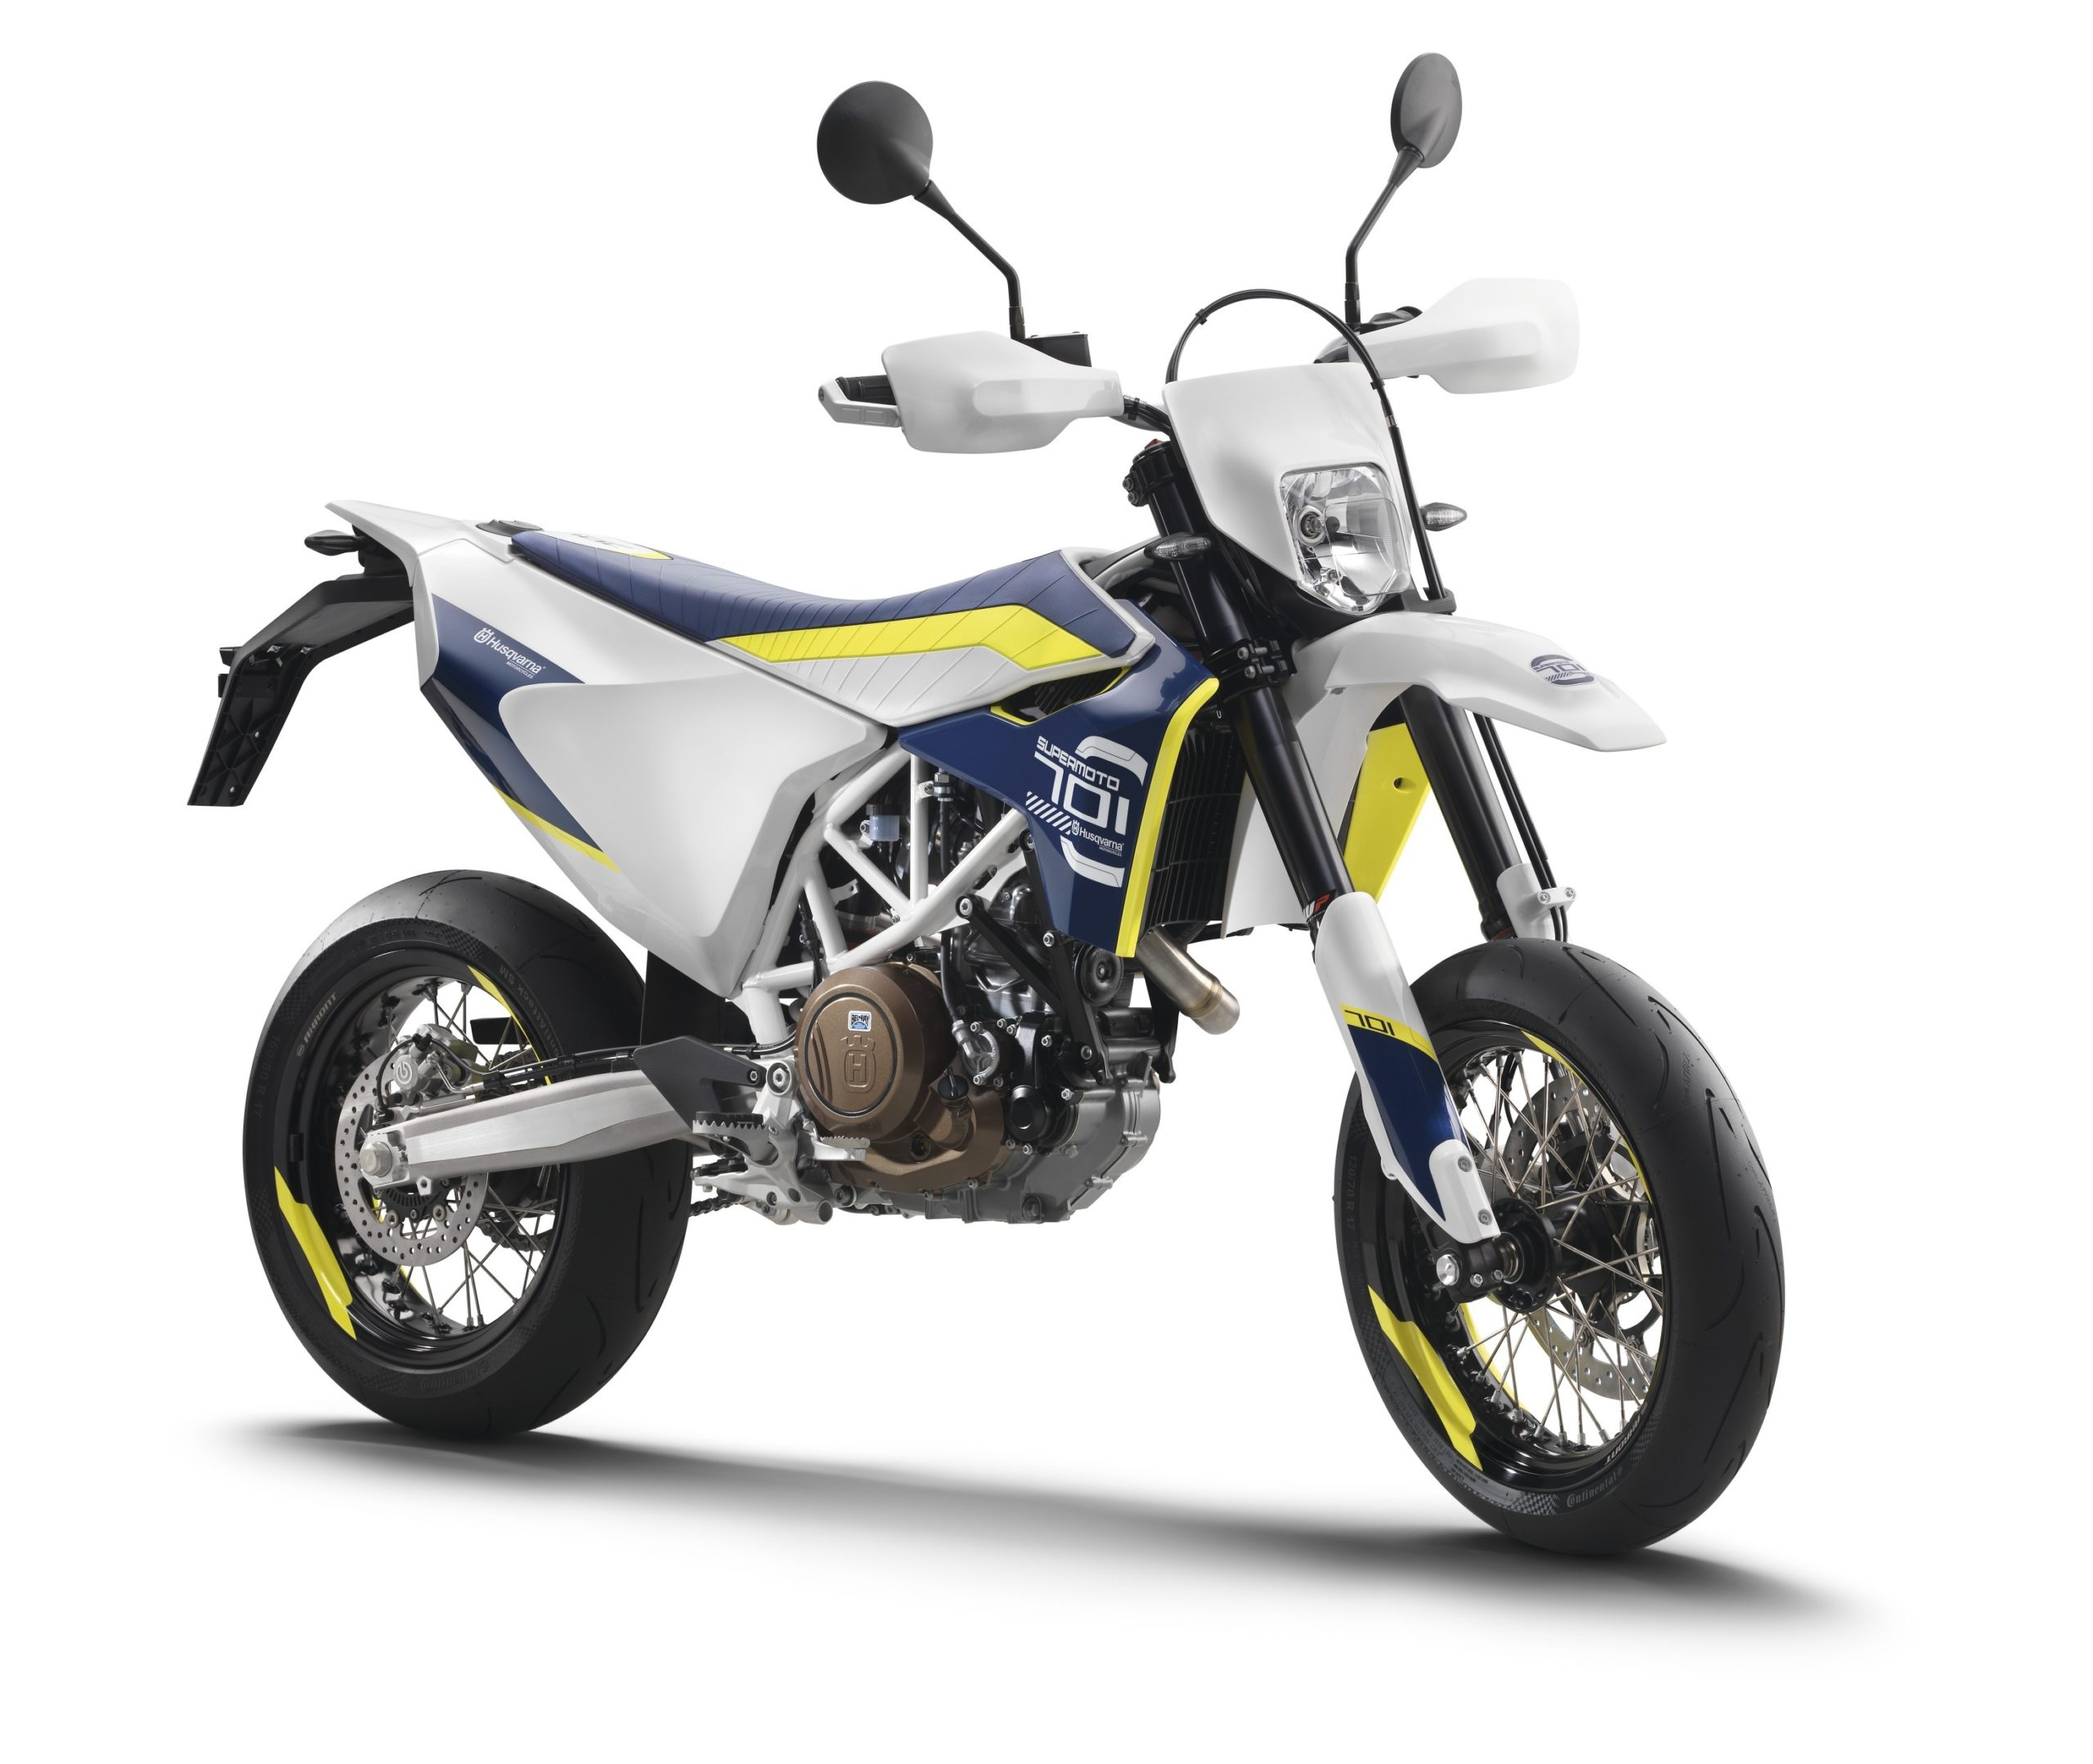 Husqvarna 701 Supermoto Test Ride Drivemag Riders